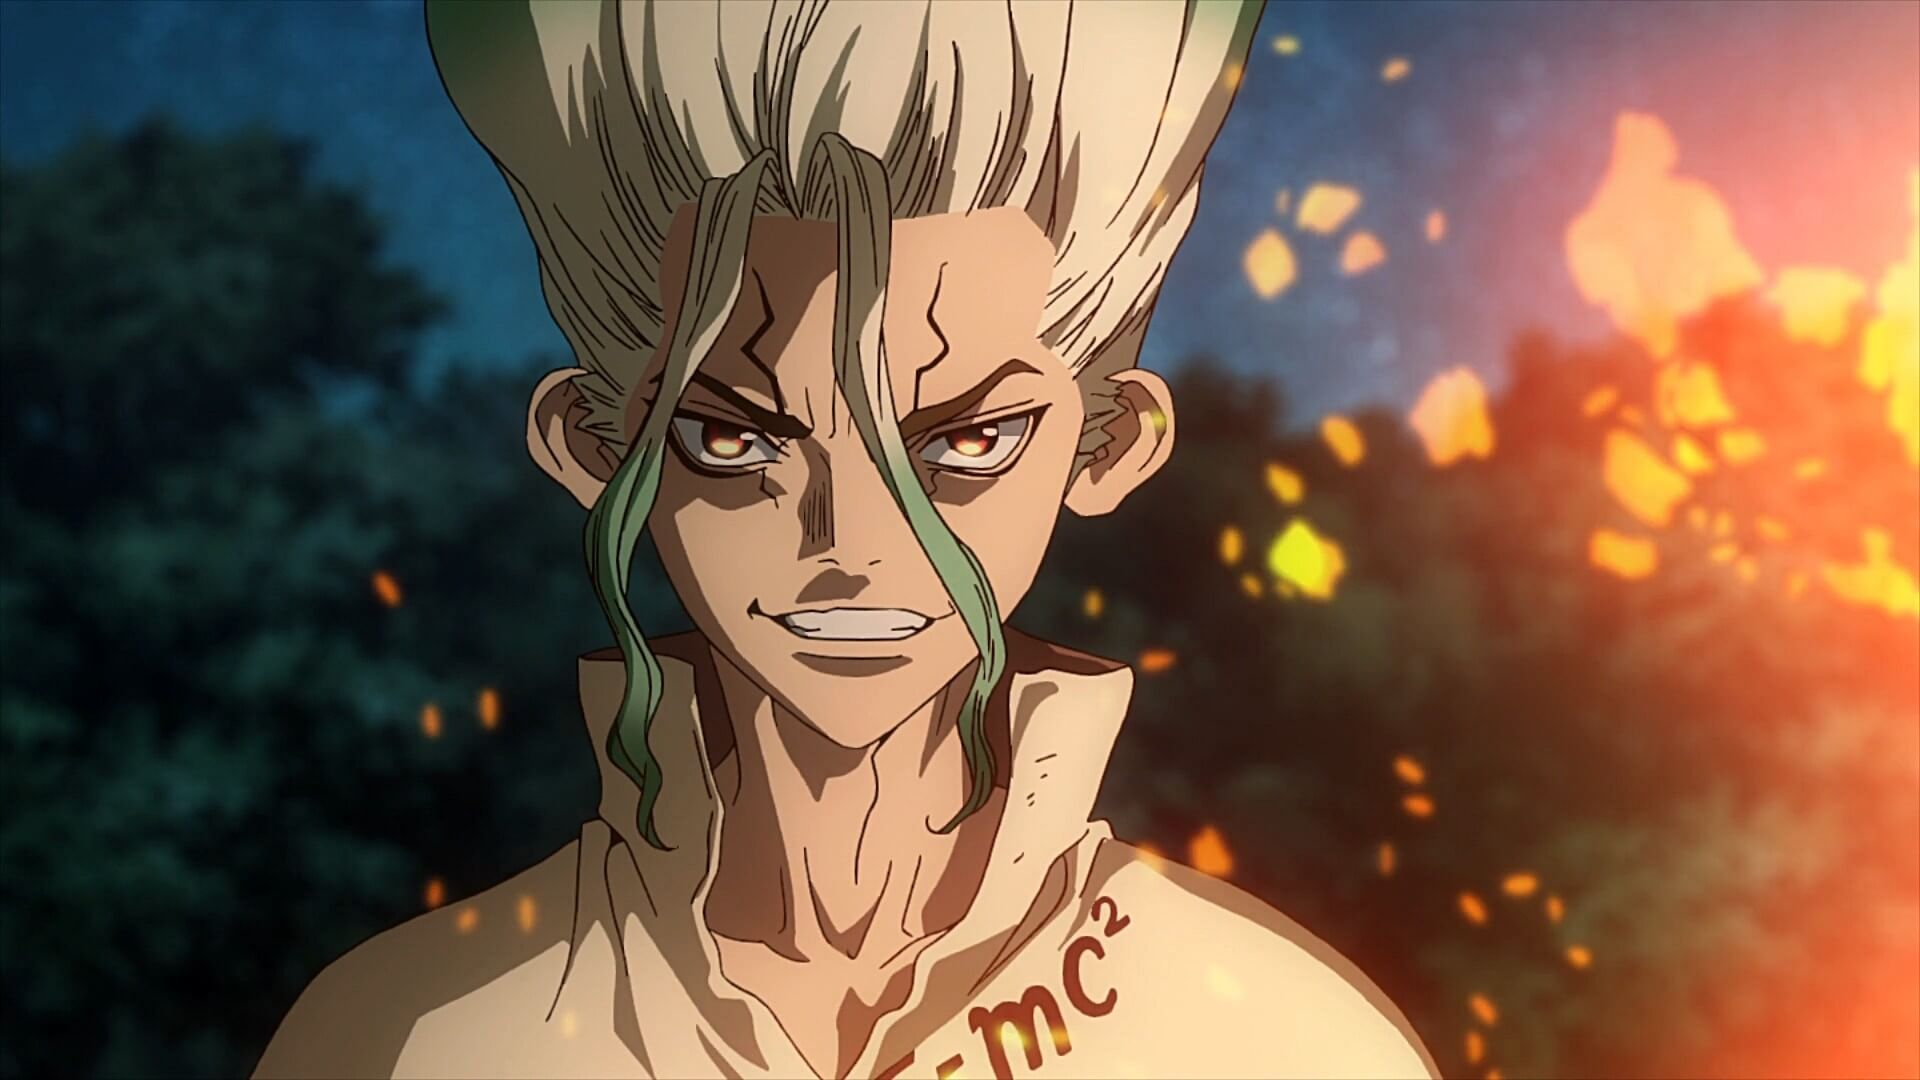 Dr. Stone Episode List